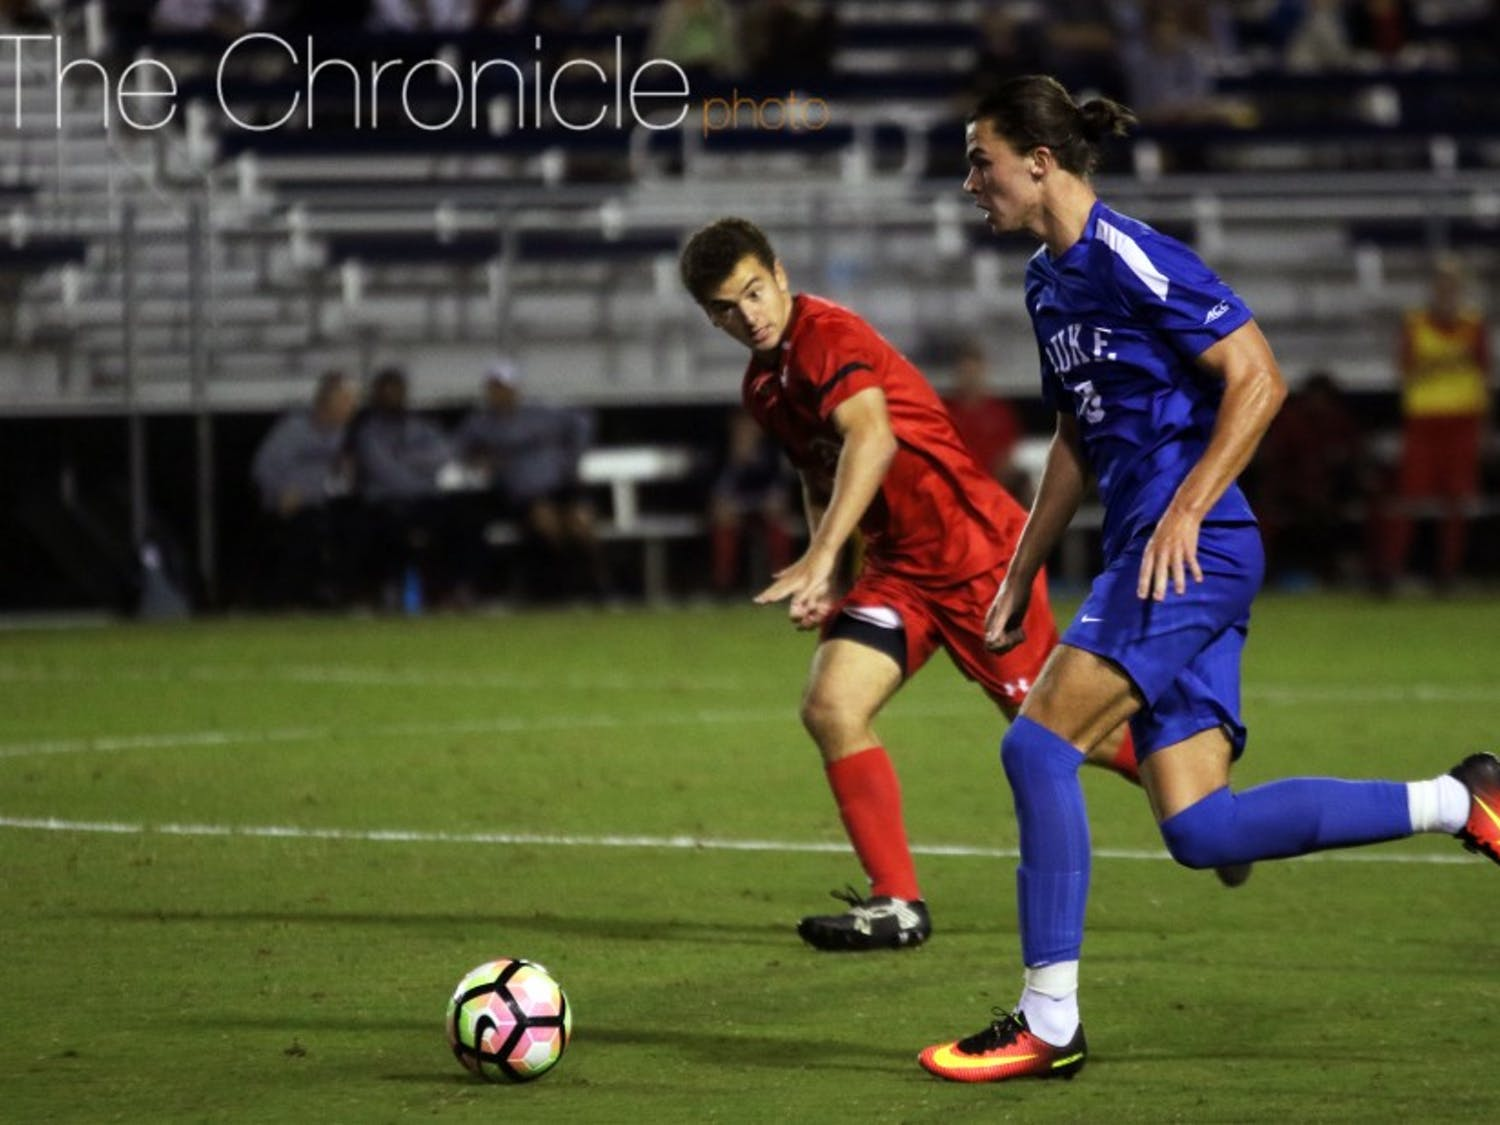 The Blue Devils gave up three goals for the first time this season Tuesday, dropping a home nonconference game for the second straight week.